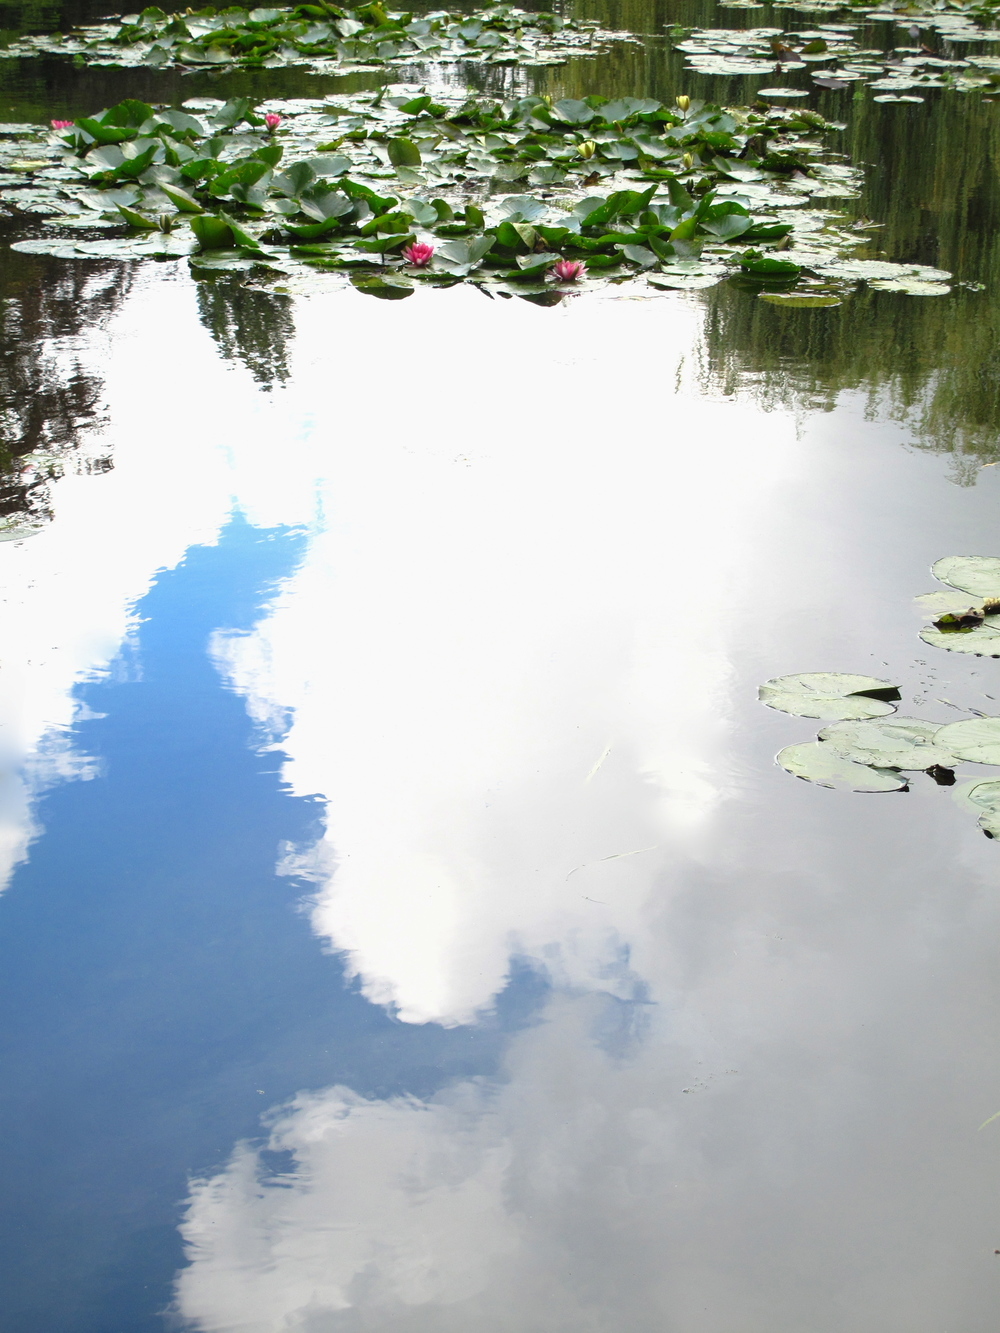 Photograph like a Monet - waterlilies and blue sky at Giverny.